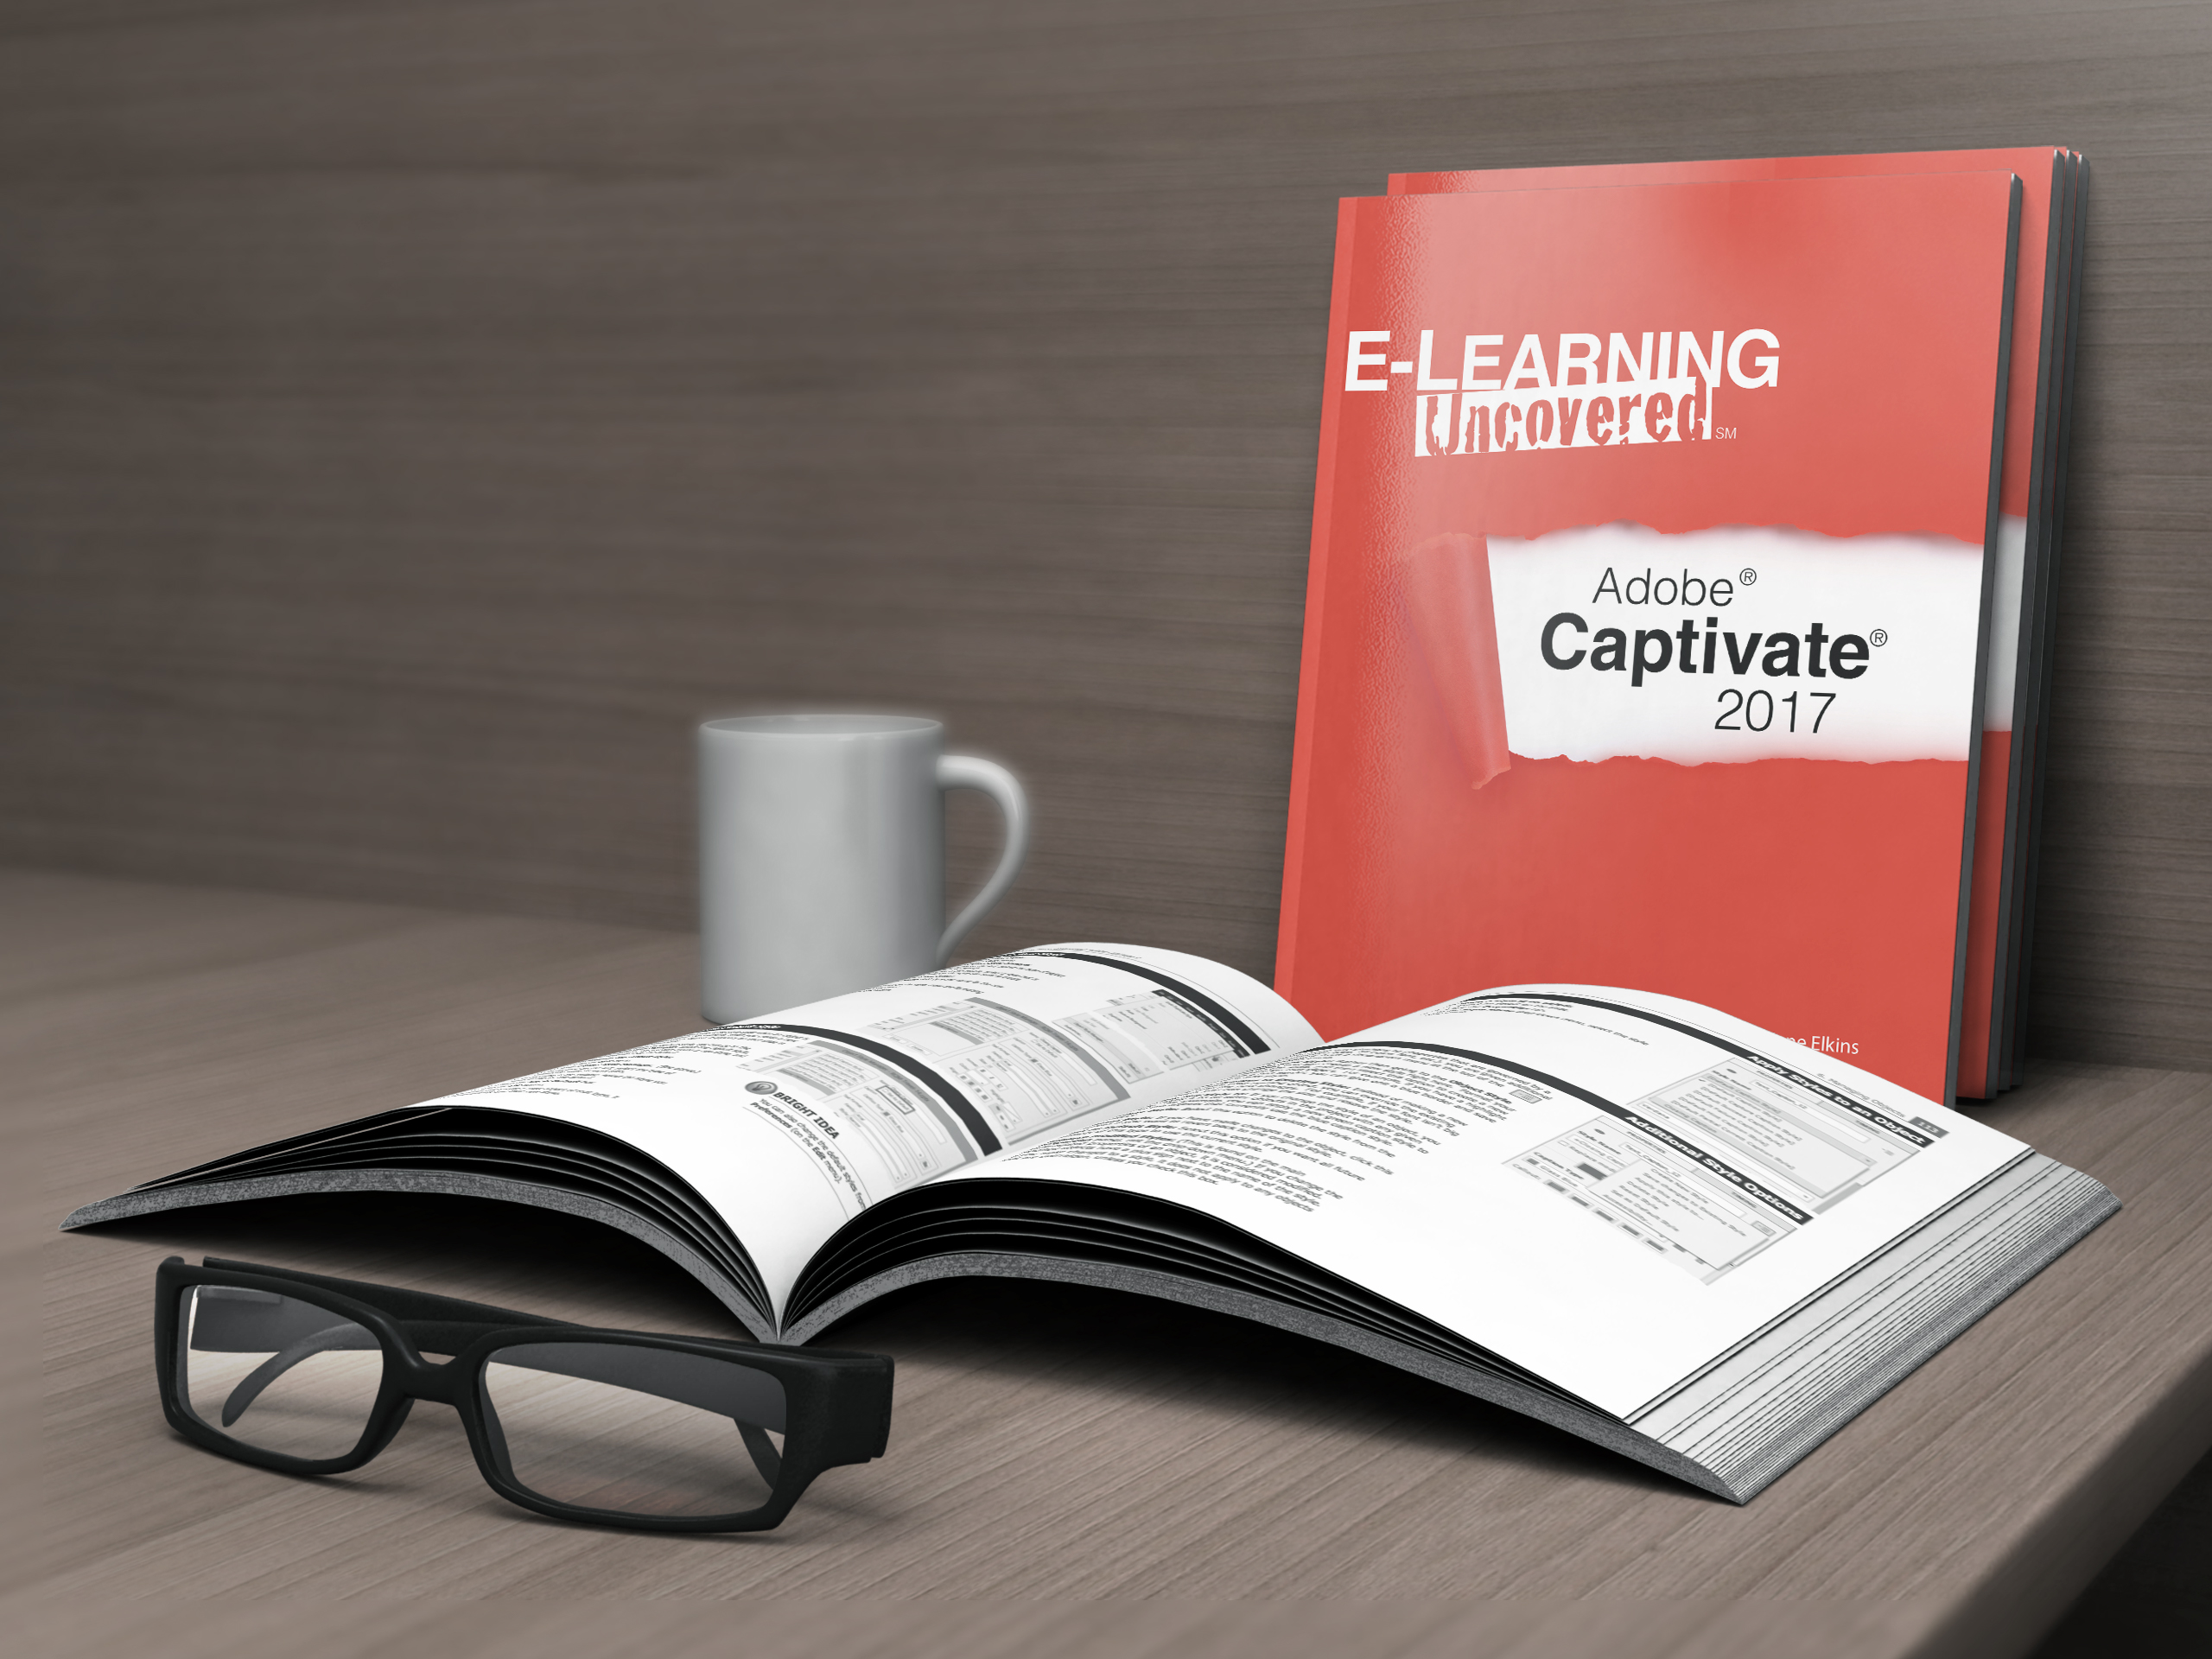 Adobe Captivate 2017 Book